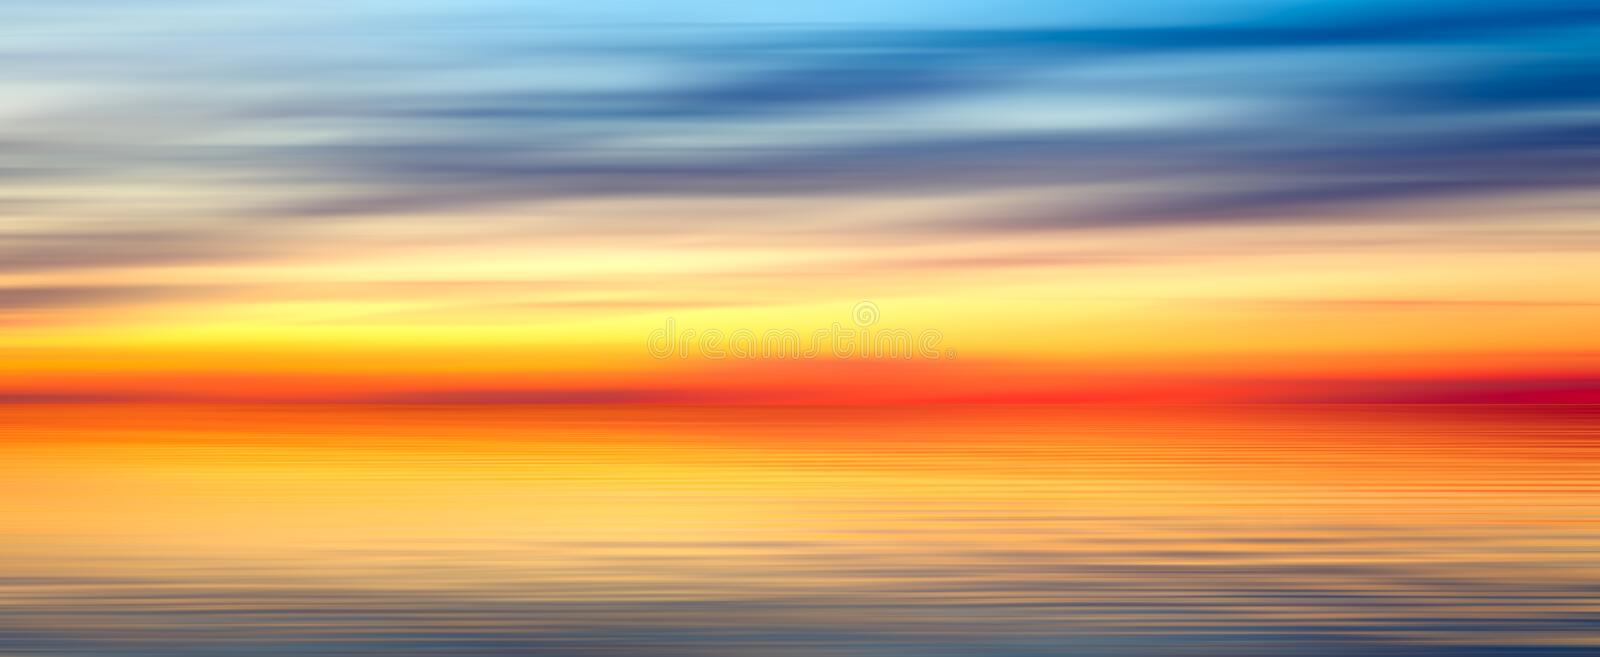 Nice bright red yellow blue abstract blur horizontal texture background panorama landscape with sunset lake royalty free stock photos